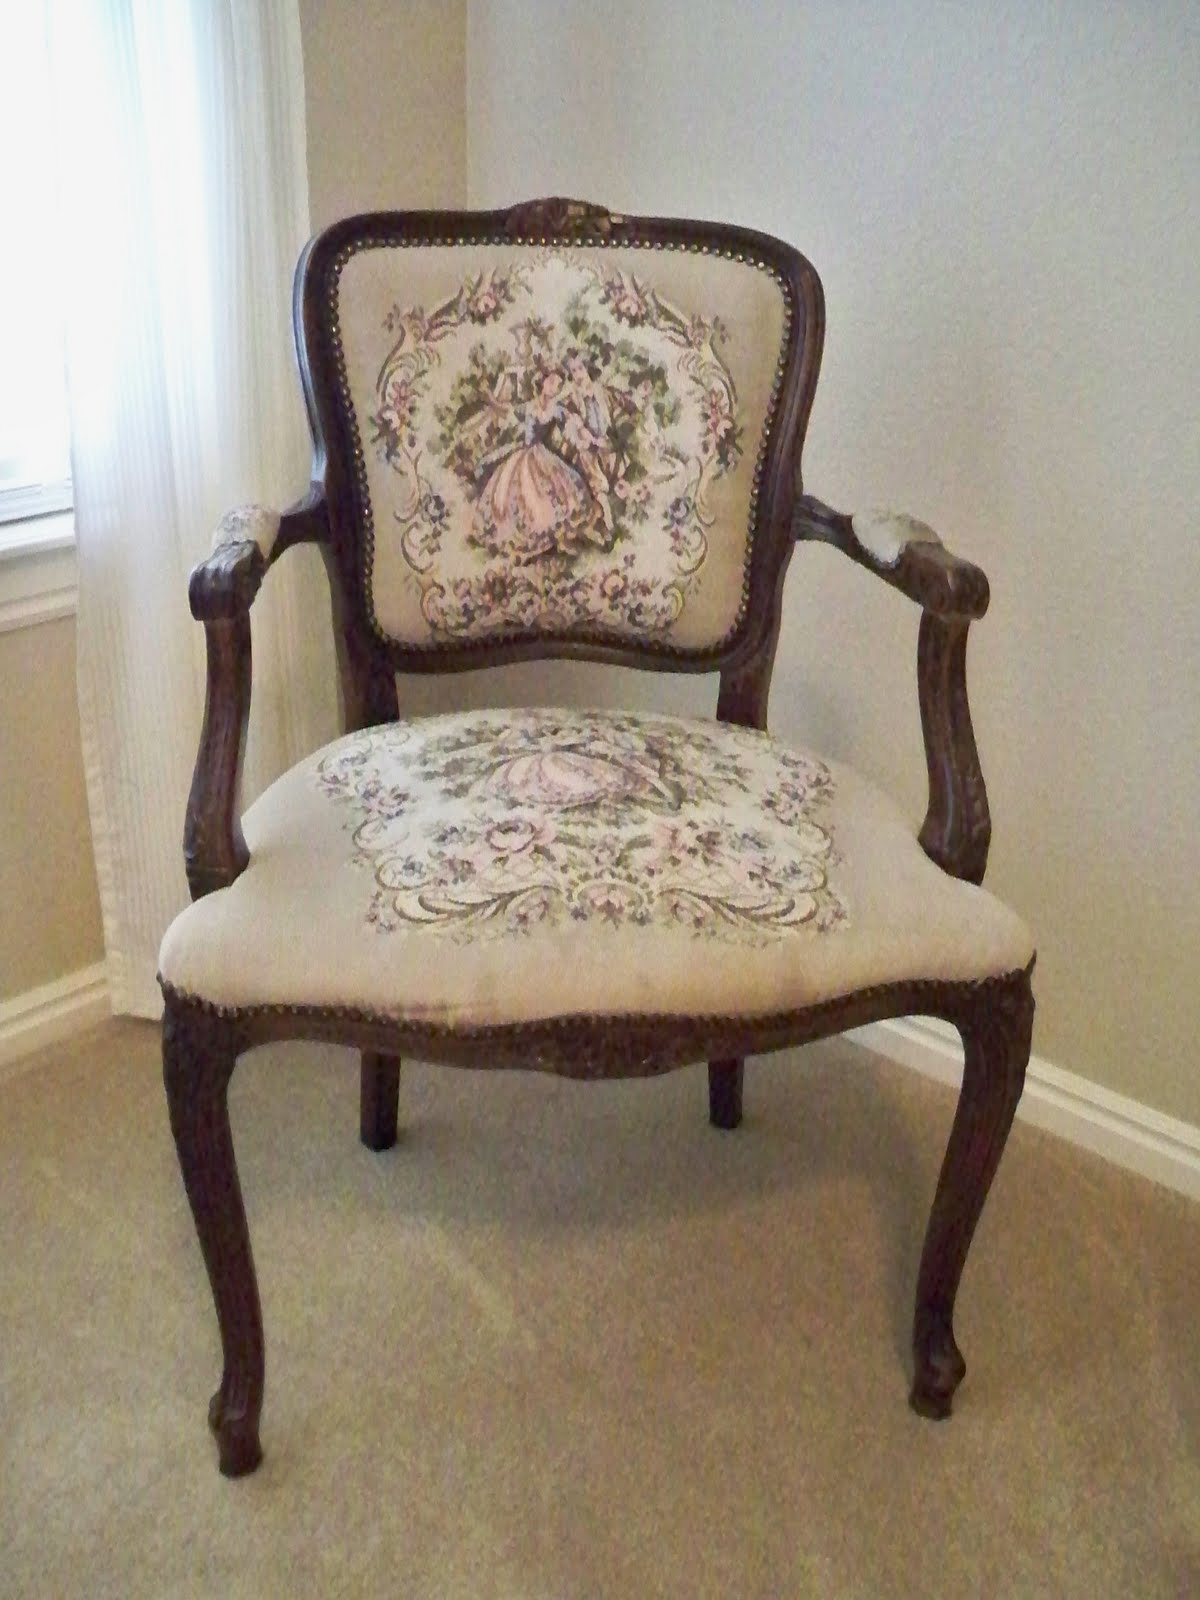 Old Fashioned Bedroom Chairs Outdoor Reading Chair Making It Homey To Modern